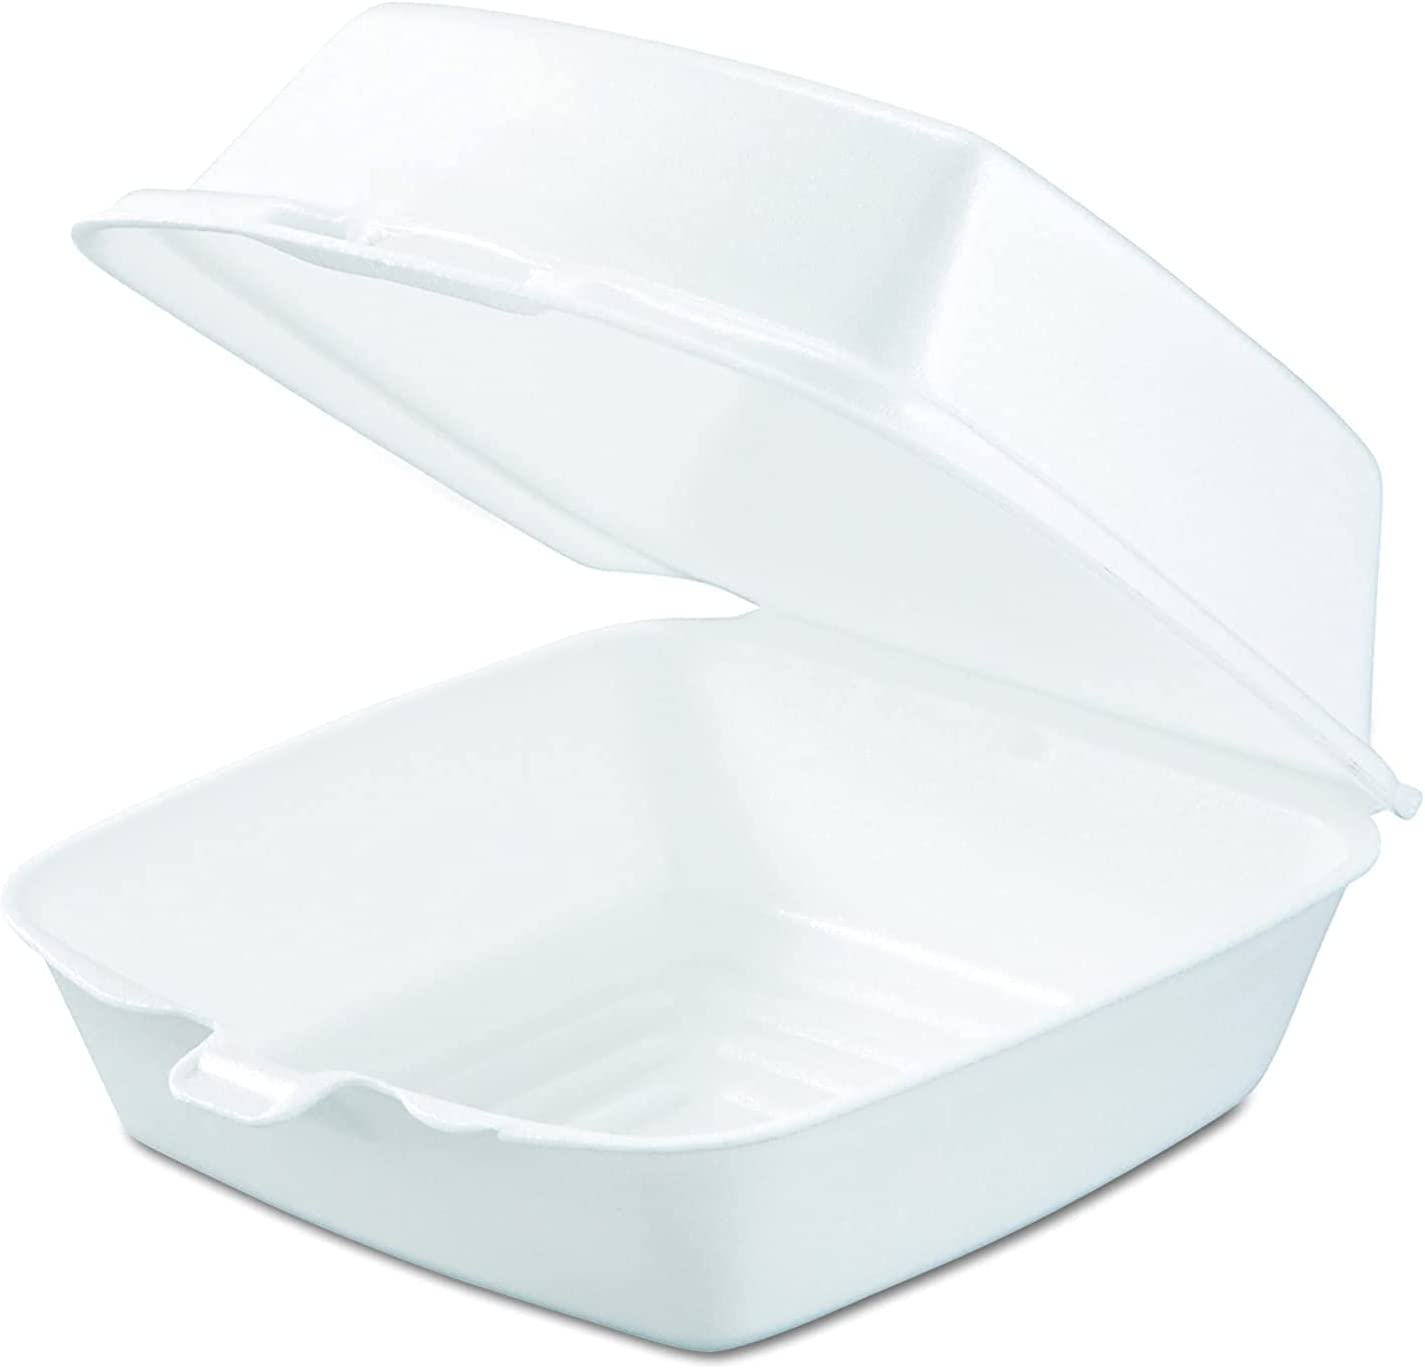 Mr Miracle 6 Inch Foam Clamshell Container for Takeout / Carryout. Pack of 50. Model MM-60HT1-50PK/A